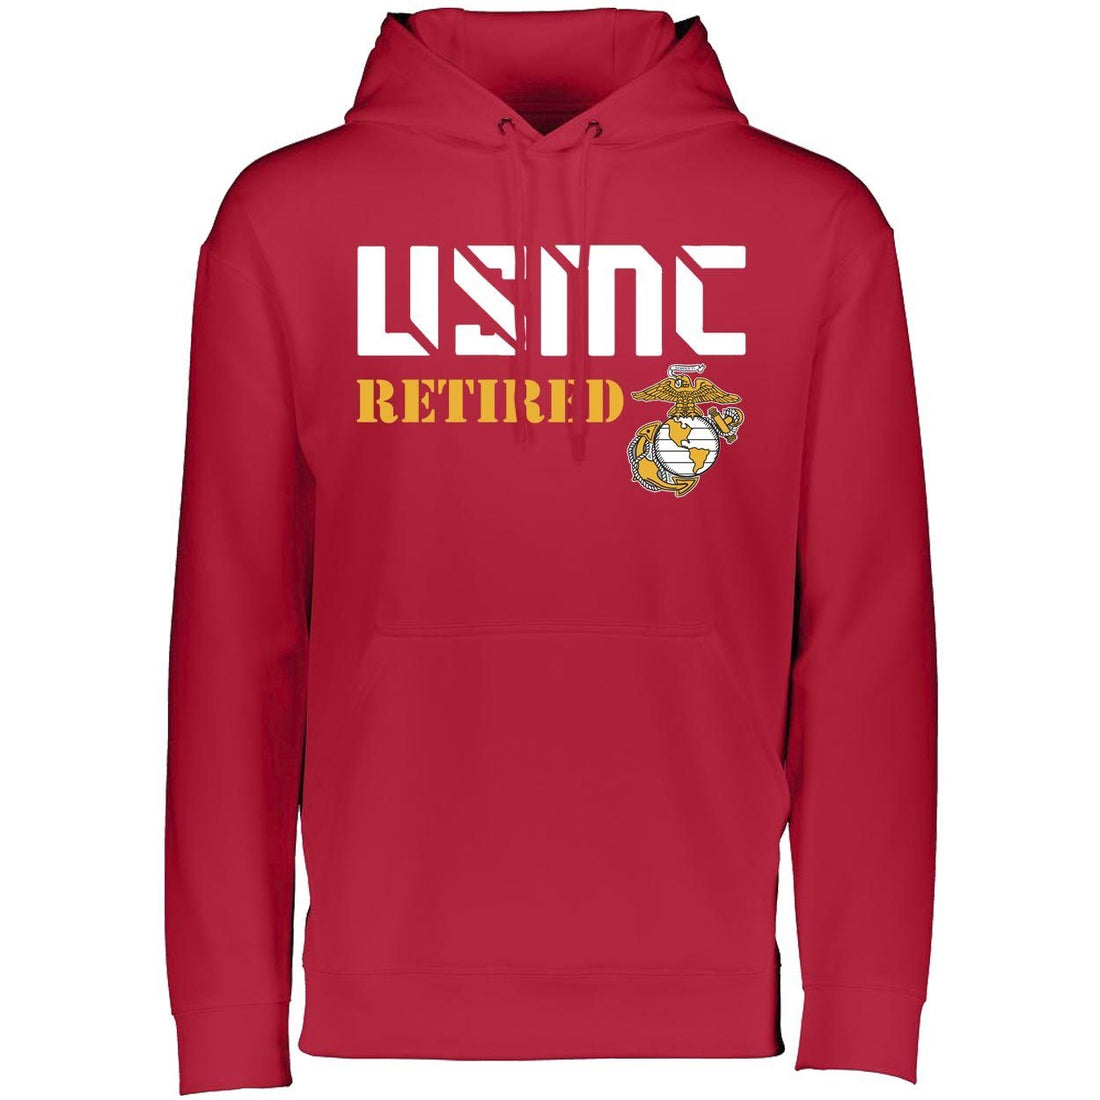 USMC Retired Dri-Fit Performance Hoodie - Marine Corps Direct